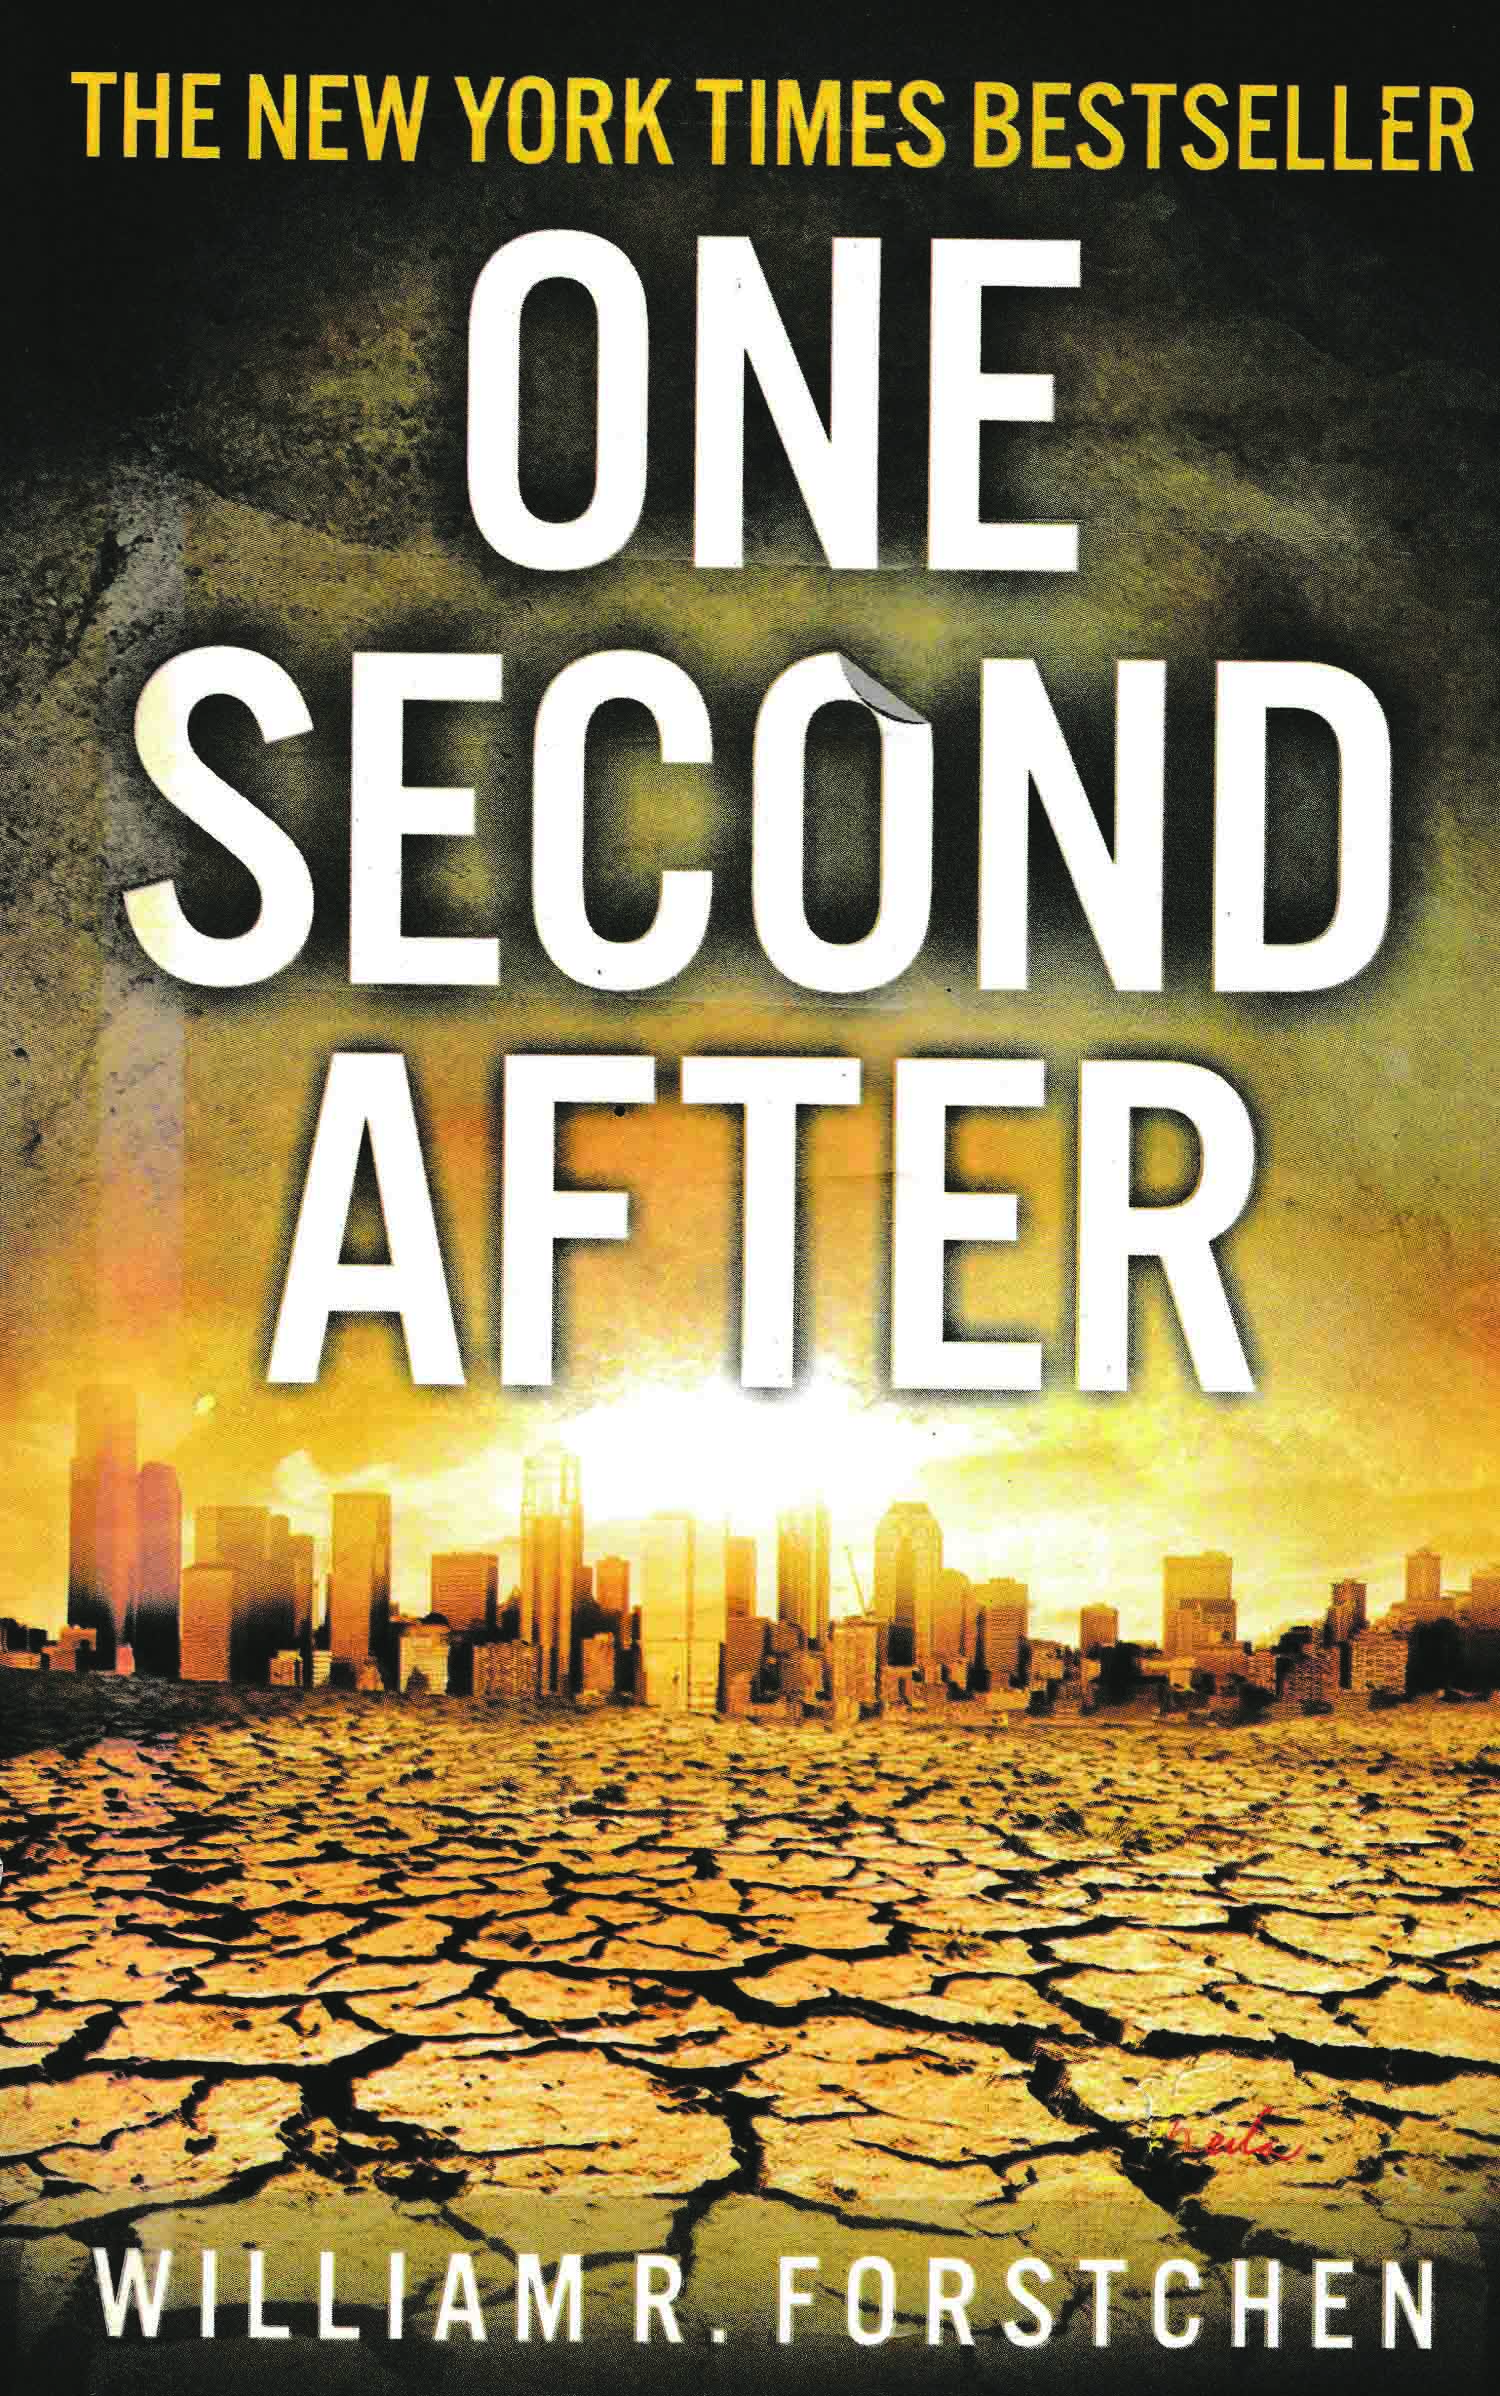 One second after [sumber elektronis]